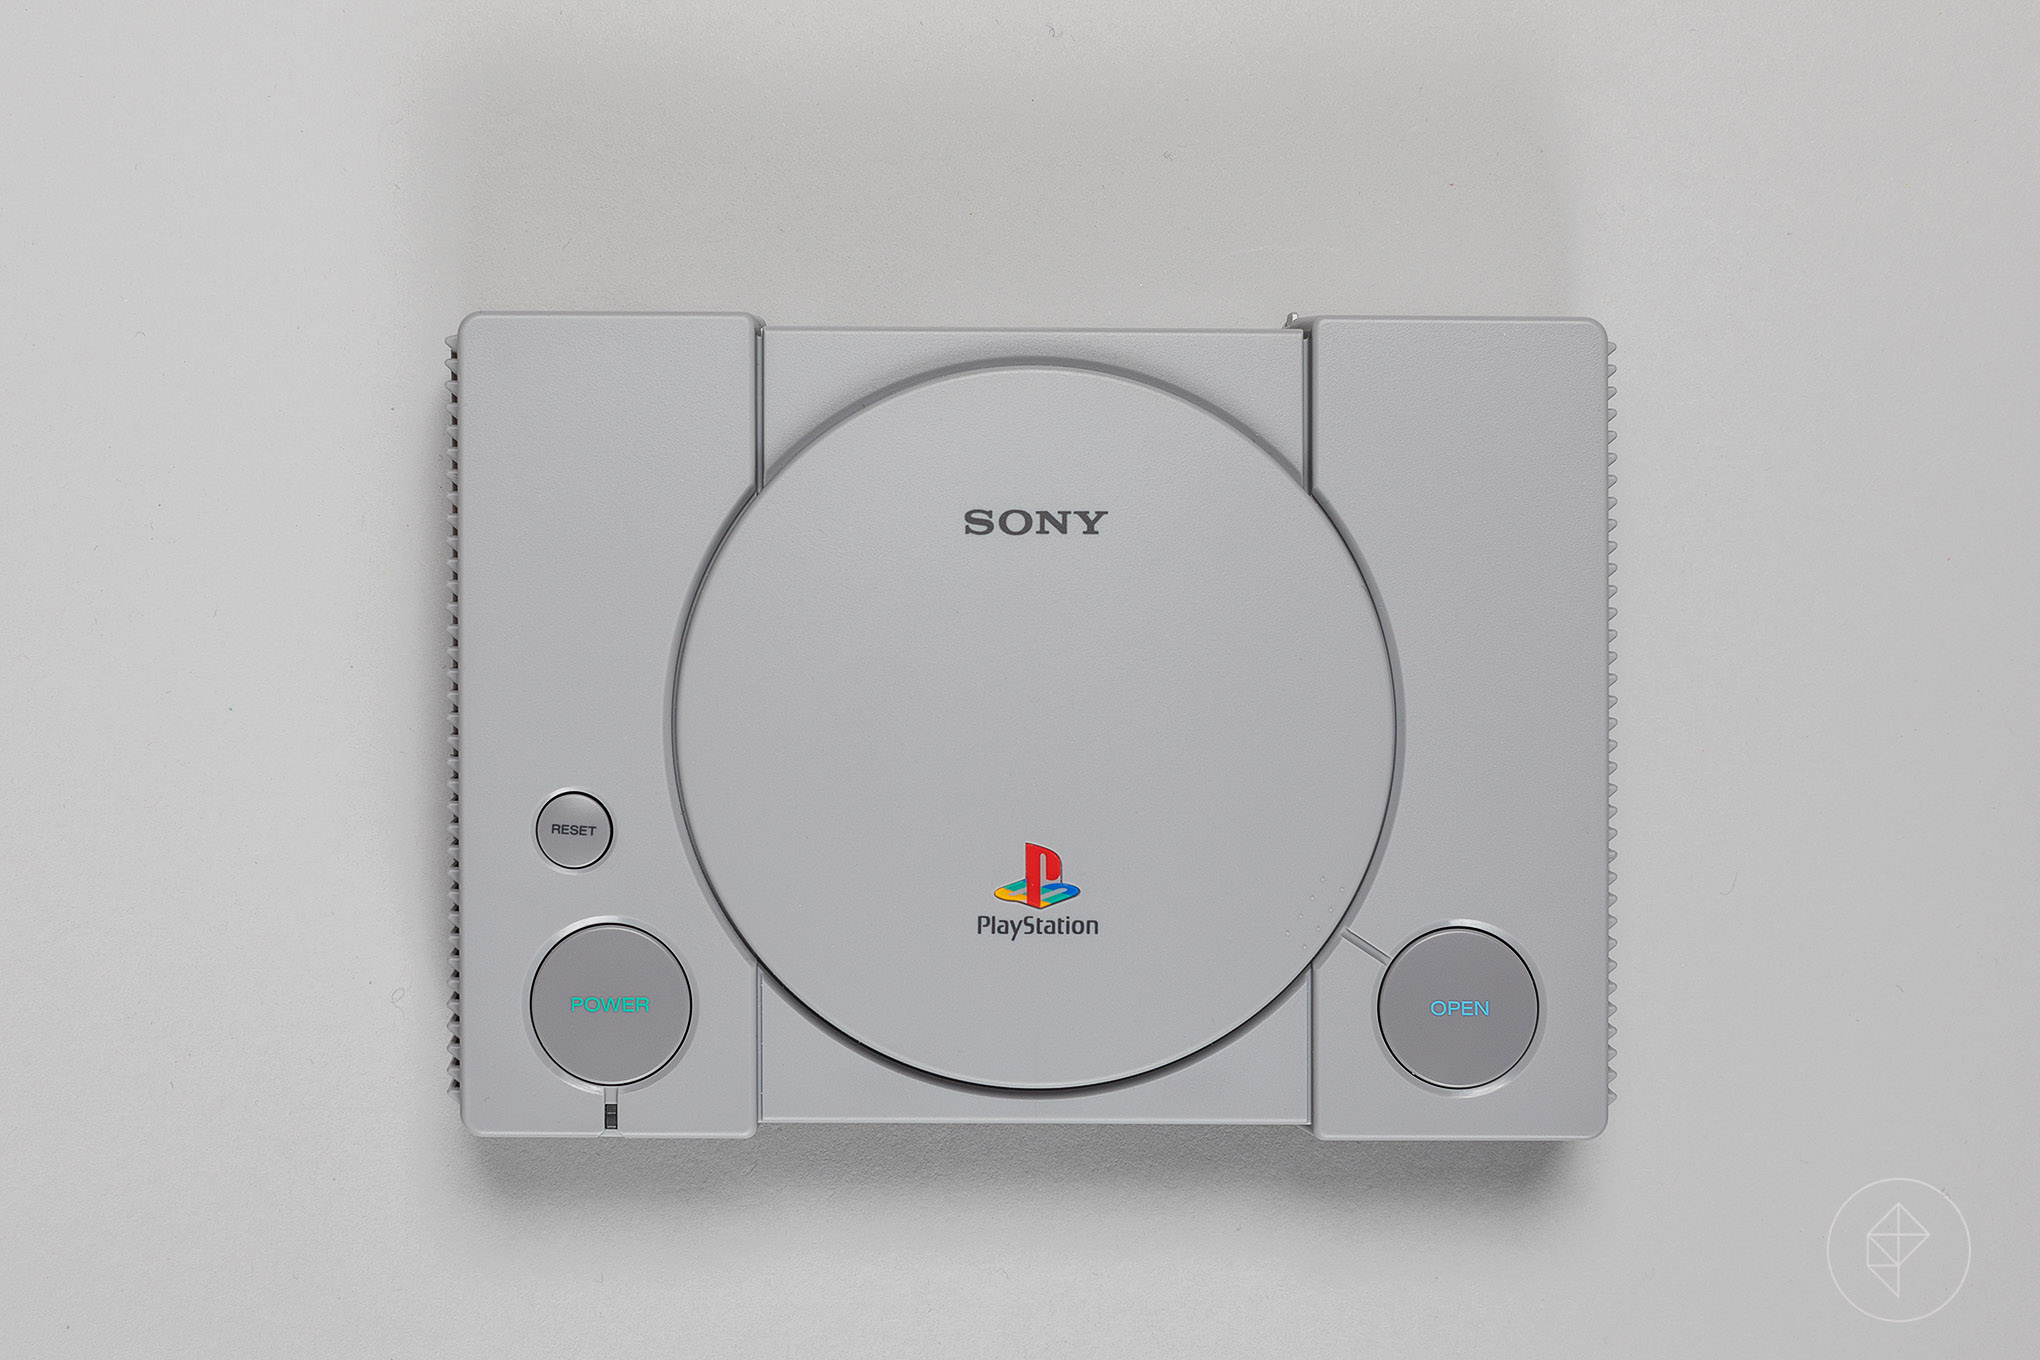 dreamcast emulation on playstation classic